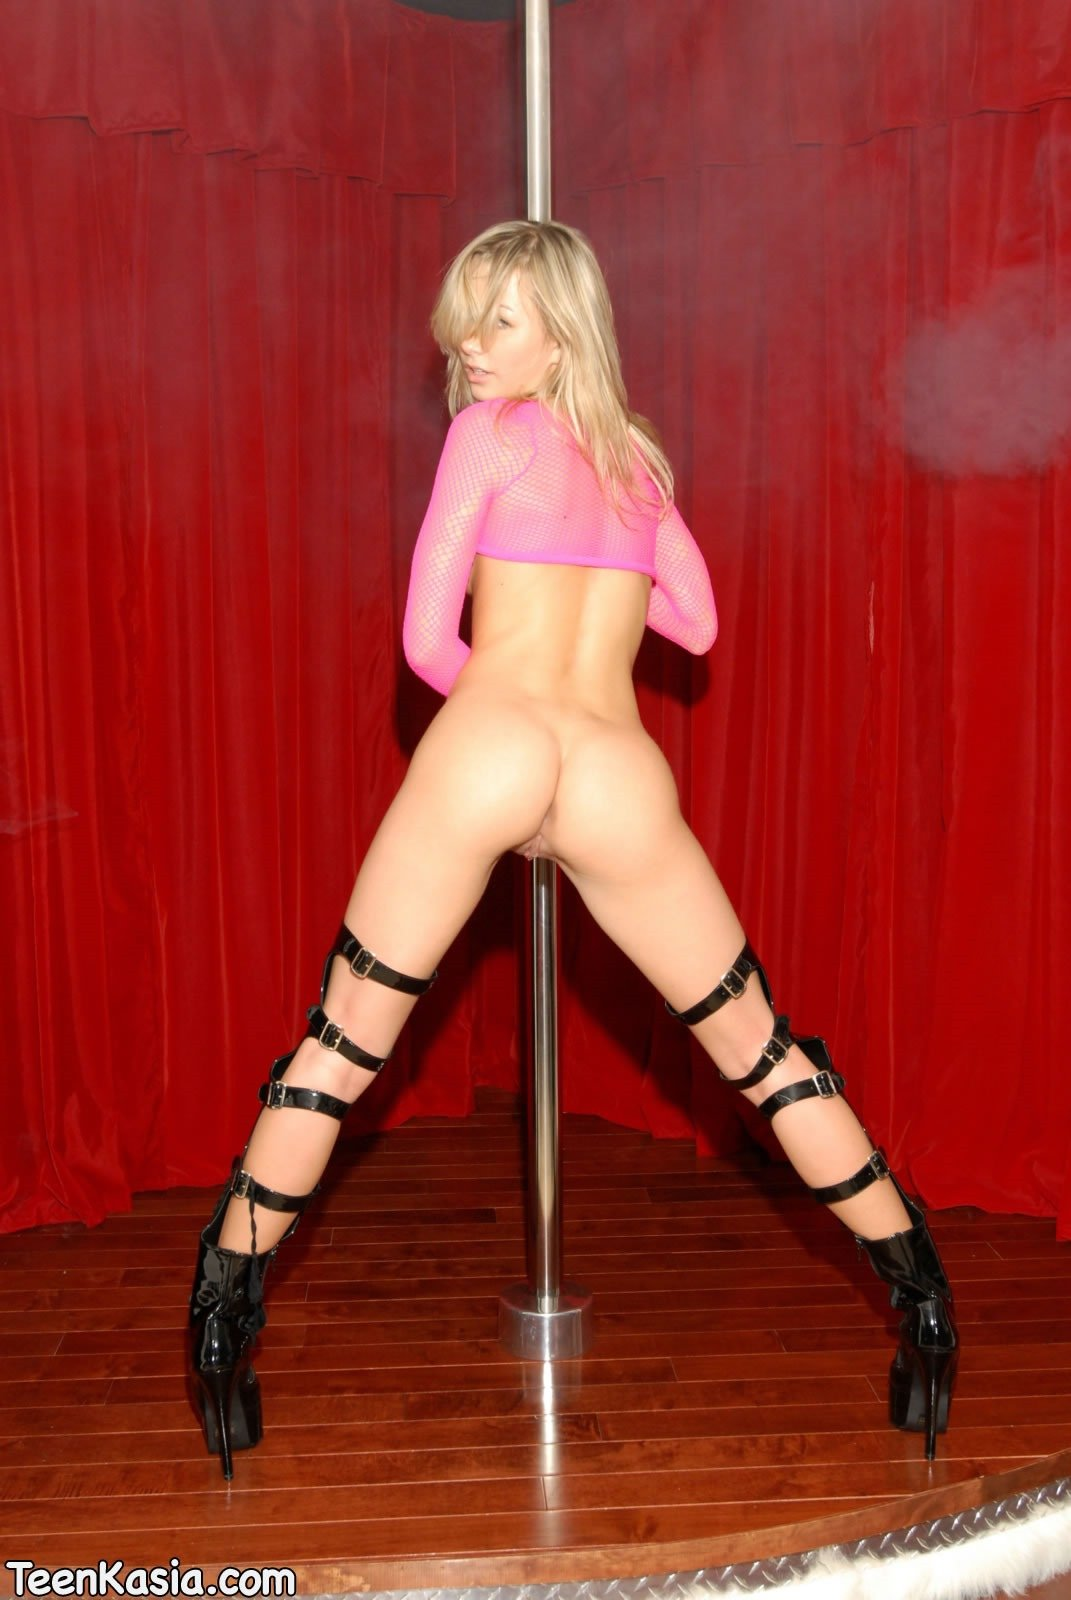 young nude babes in pole